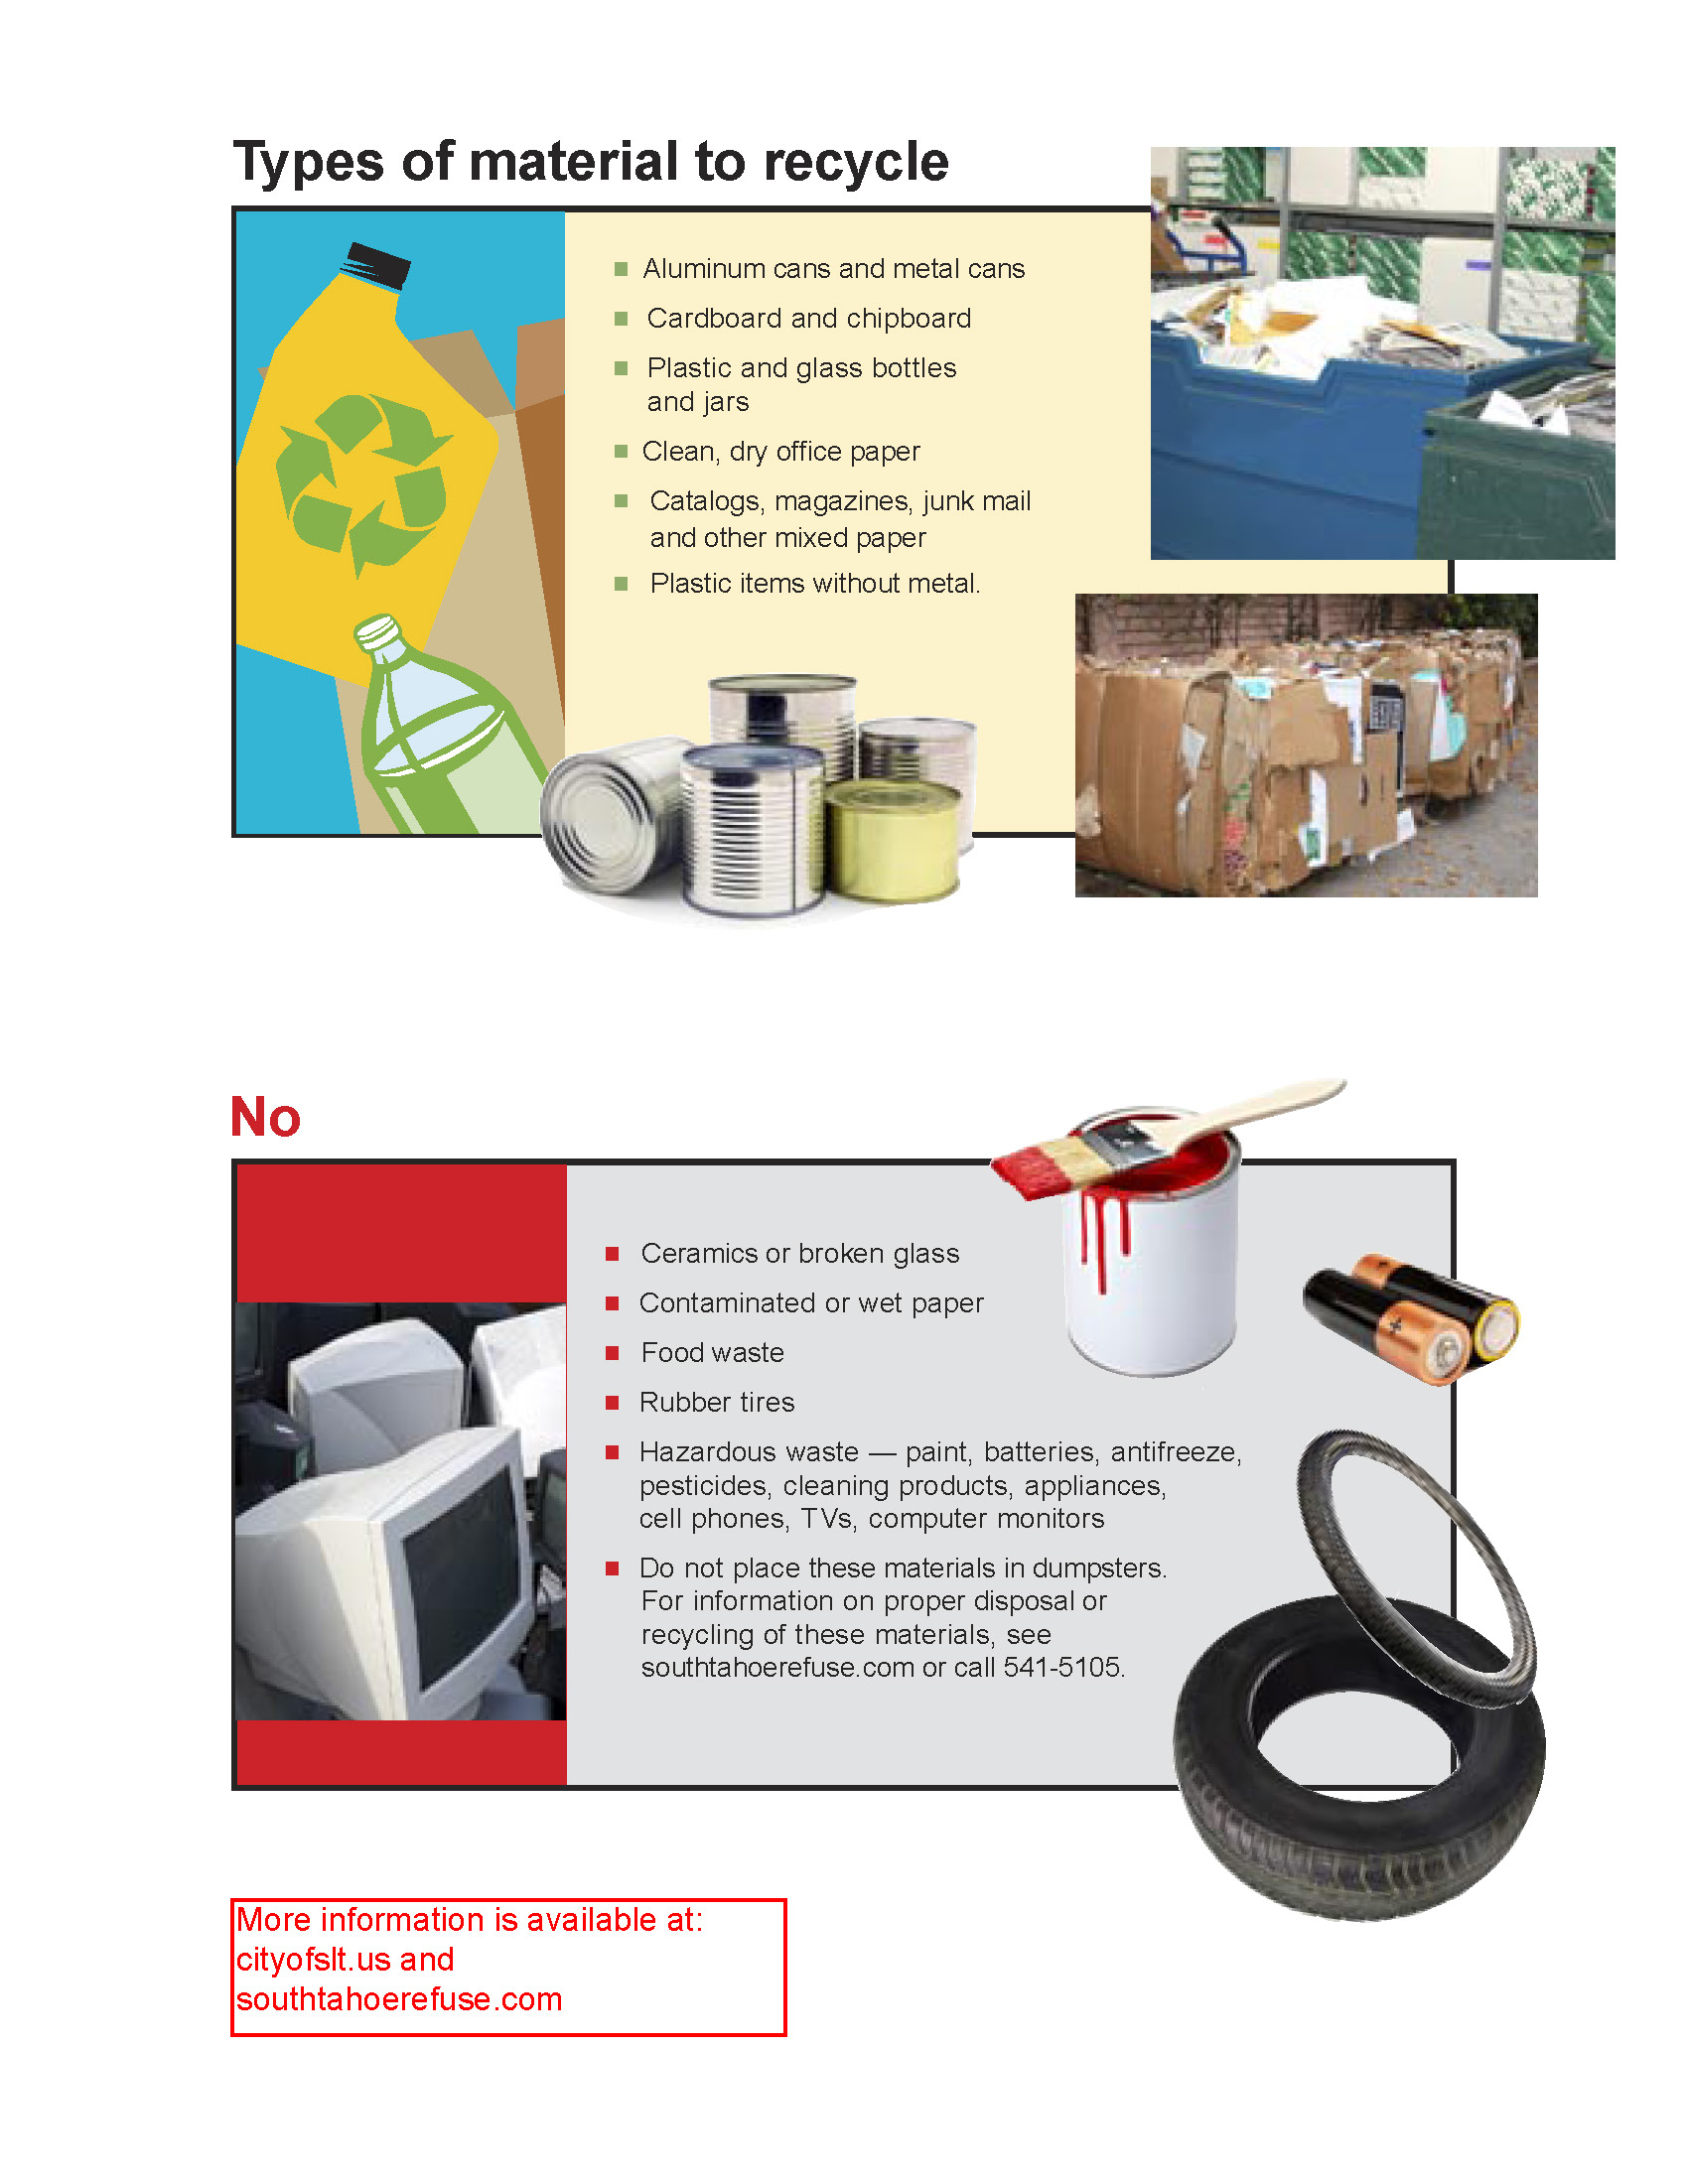 Types of materials to recycle flyer